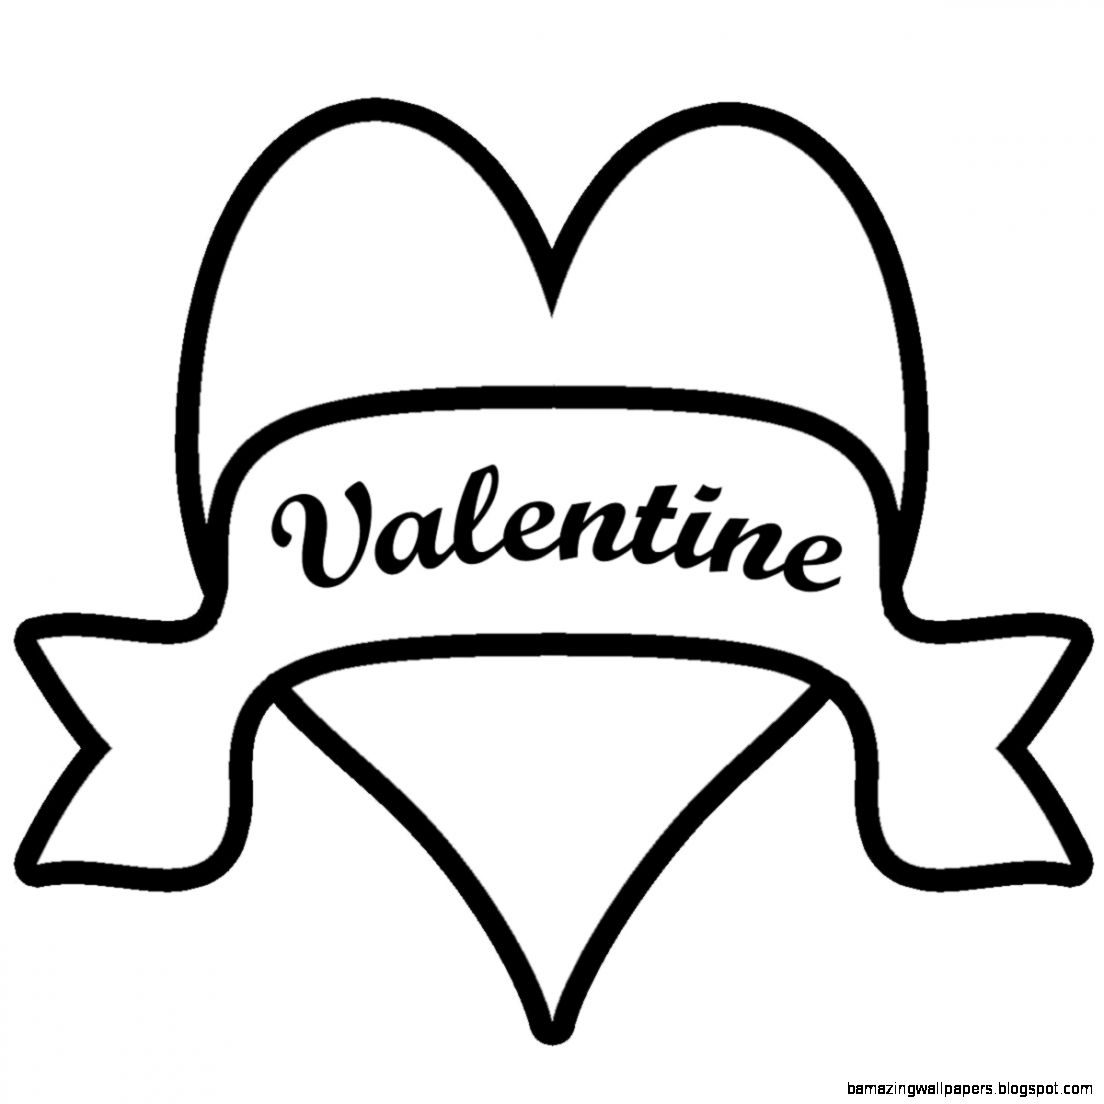 Clip Art Vine Inspired Heart with Happy Valentines Day BW